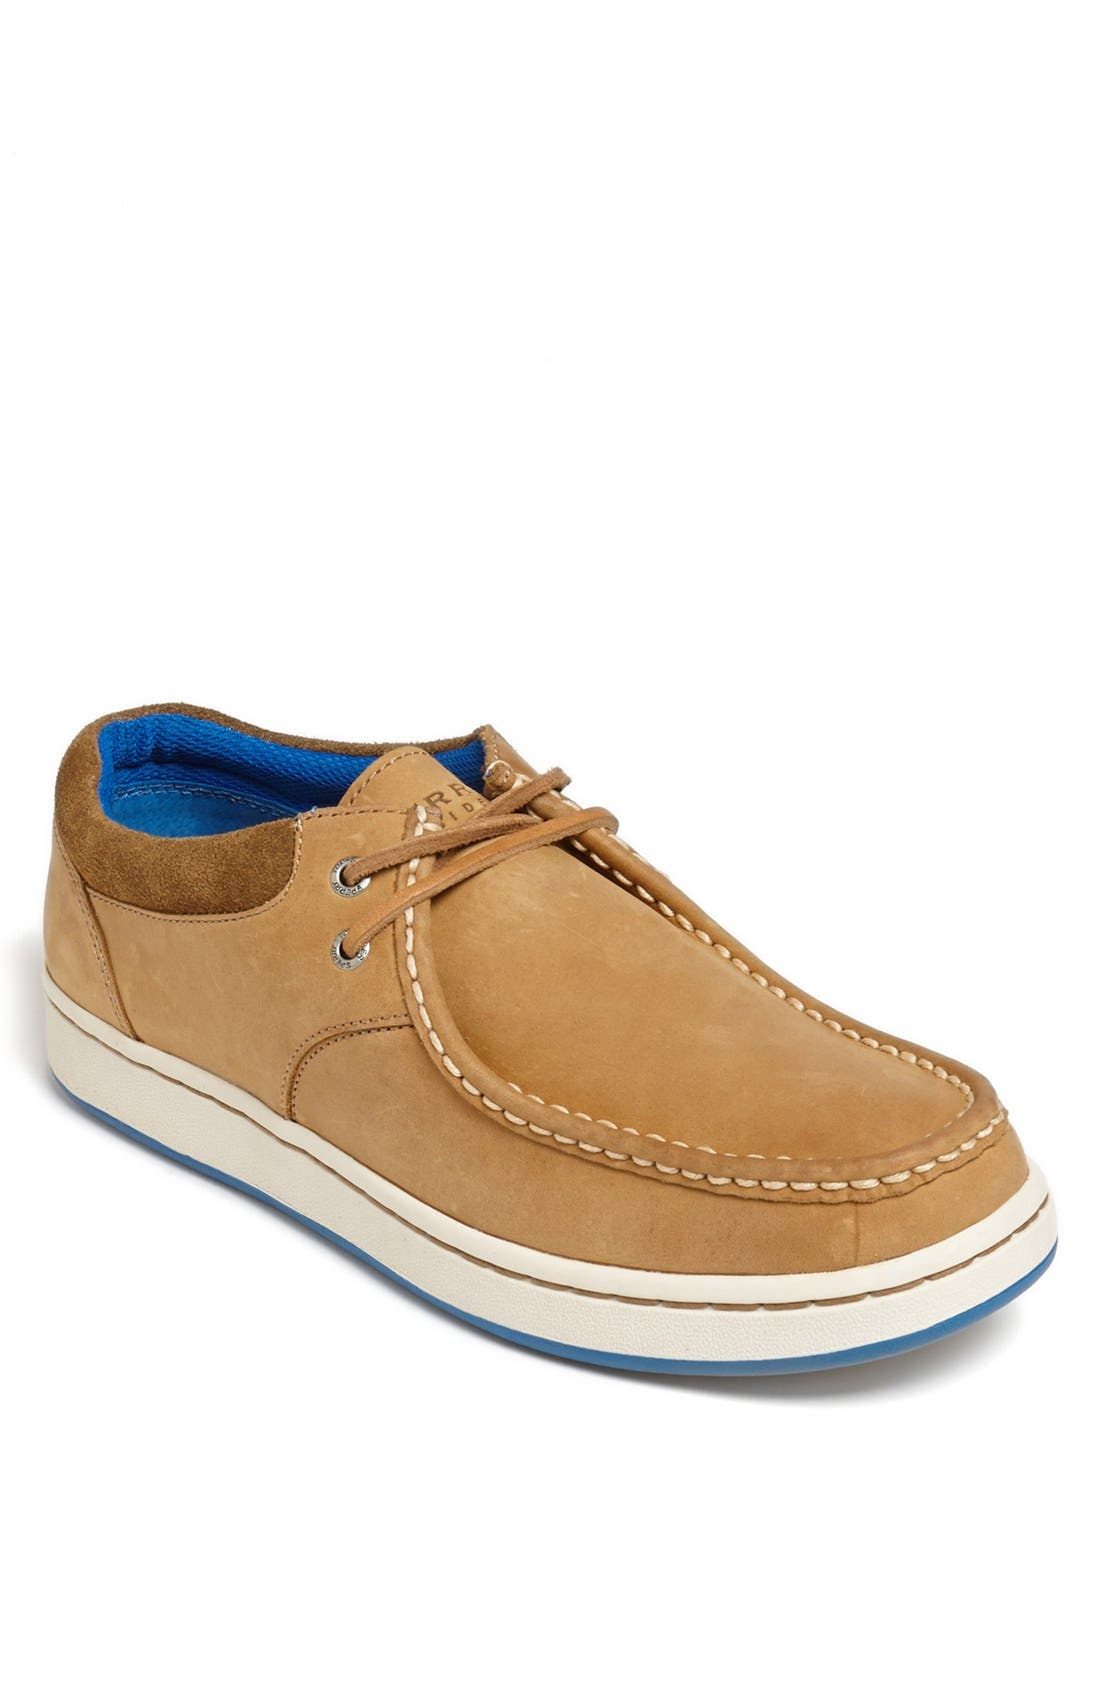 Main Image - Sperry Top-Sider® 'Sperry Cup' Chukka Boot